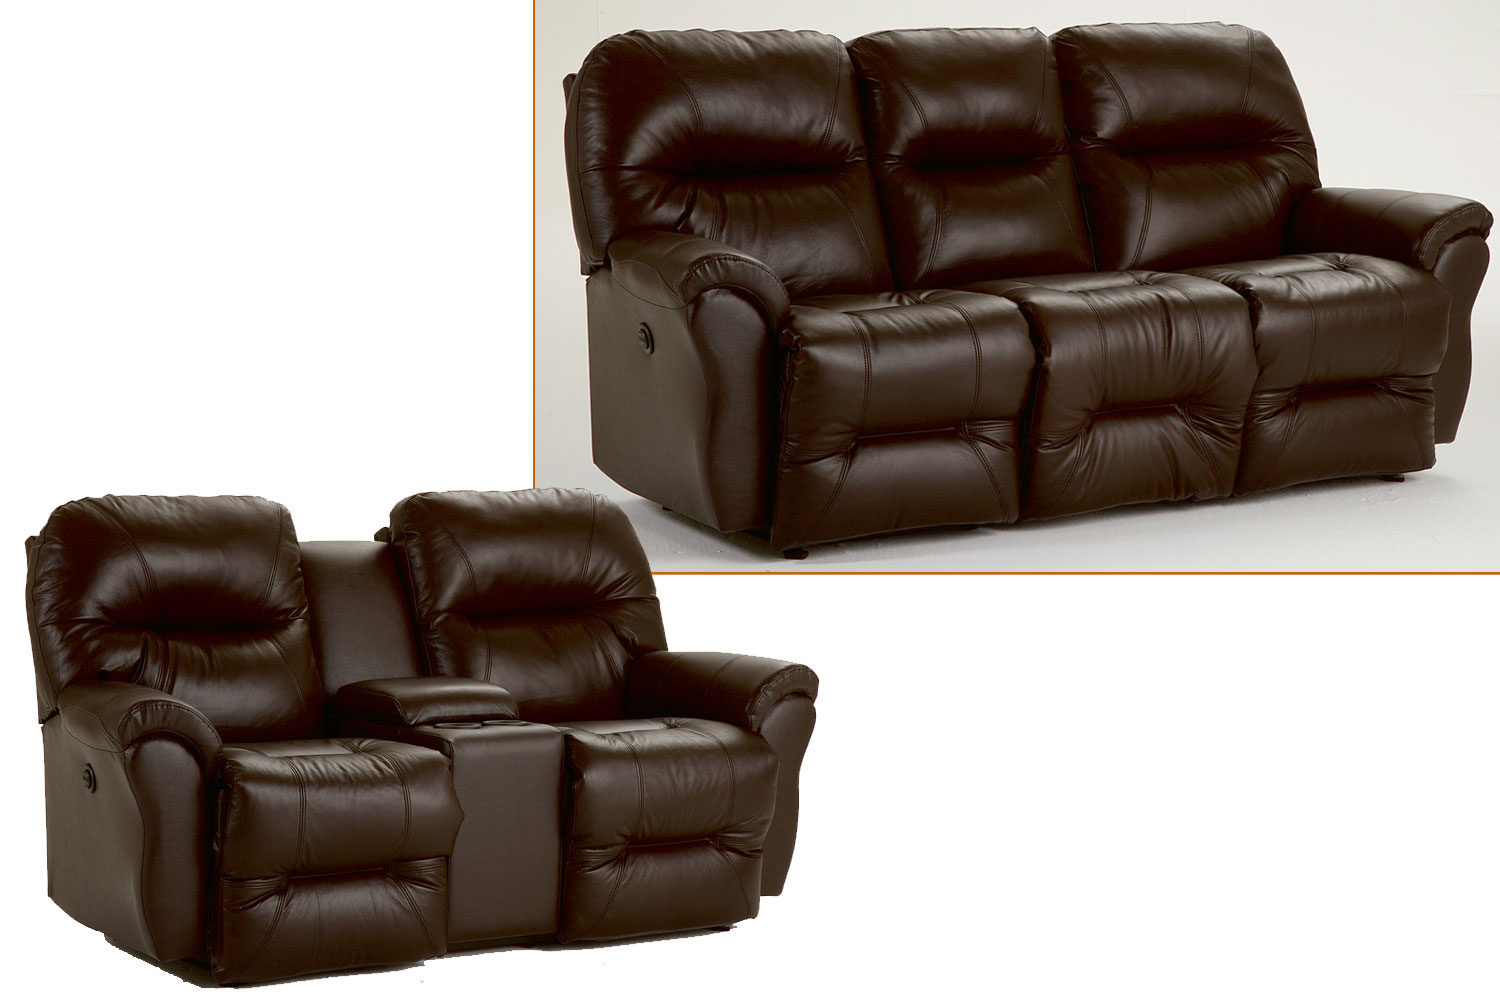 Leather Sofa Recliner.